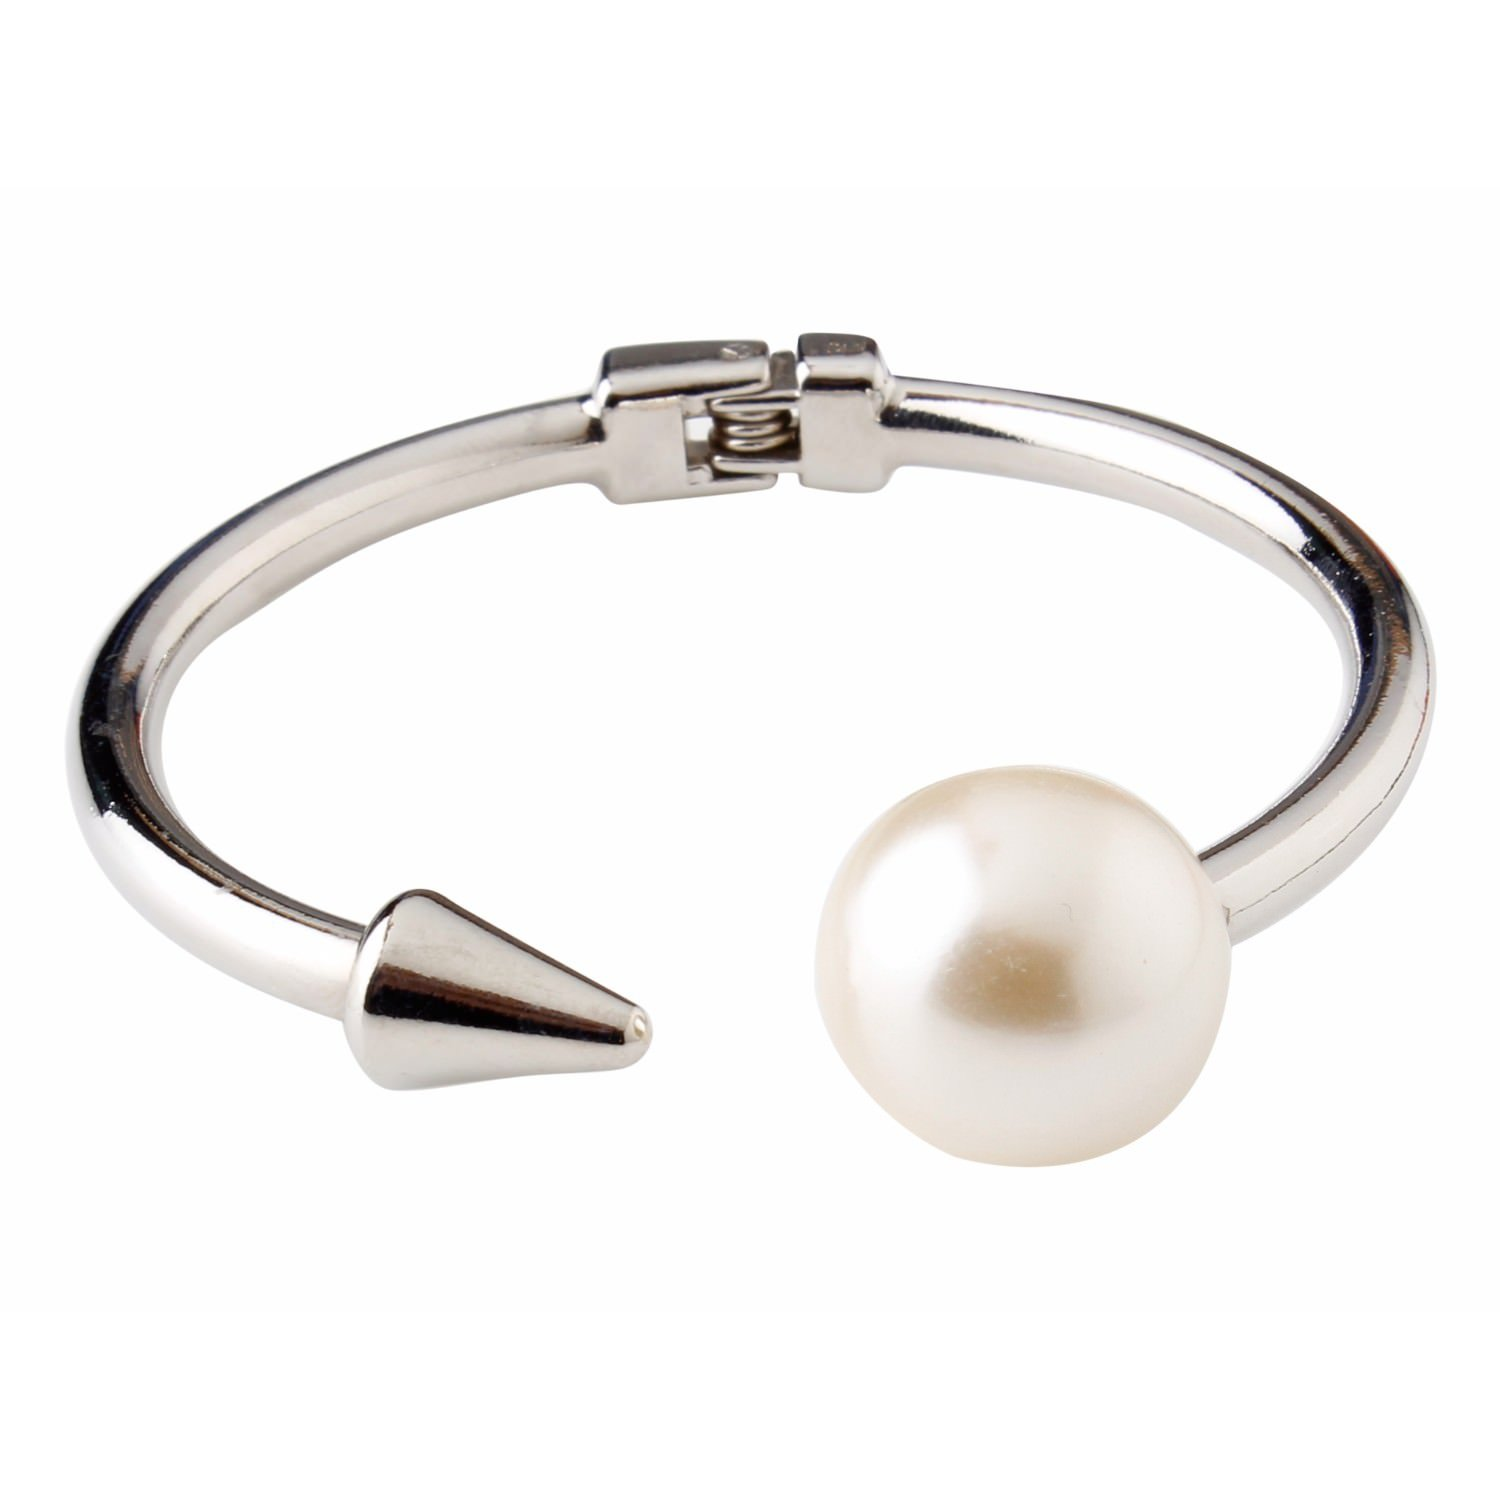 Efulgenz Silver Plated Stainless Steel Pearl Hinged Open Cuff Bracelet Bangle for Women and Girls Love Gift